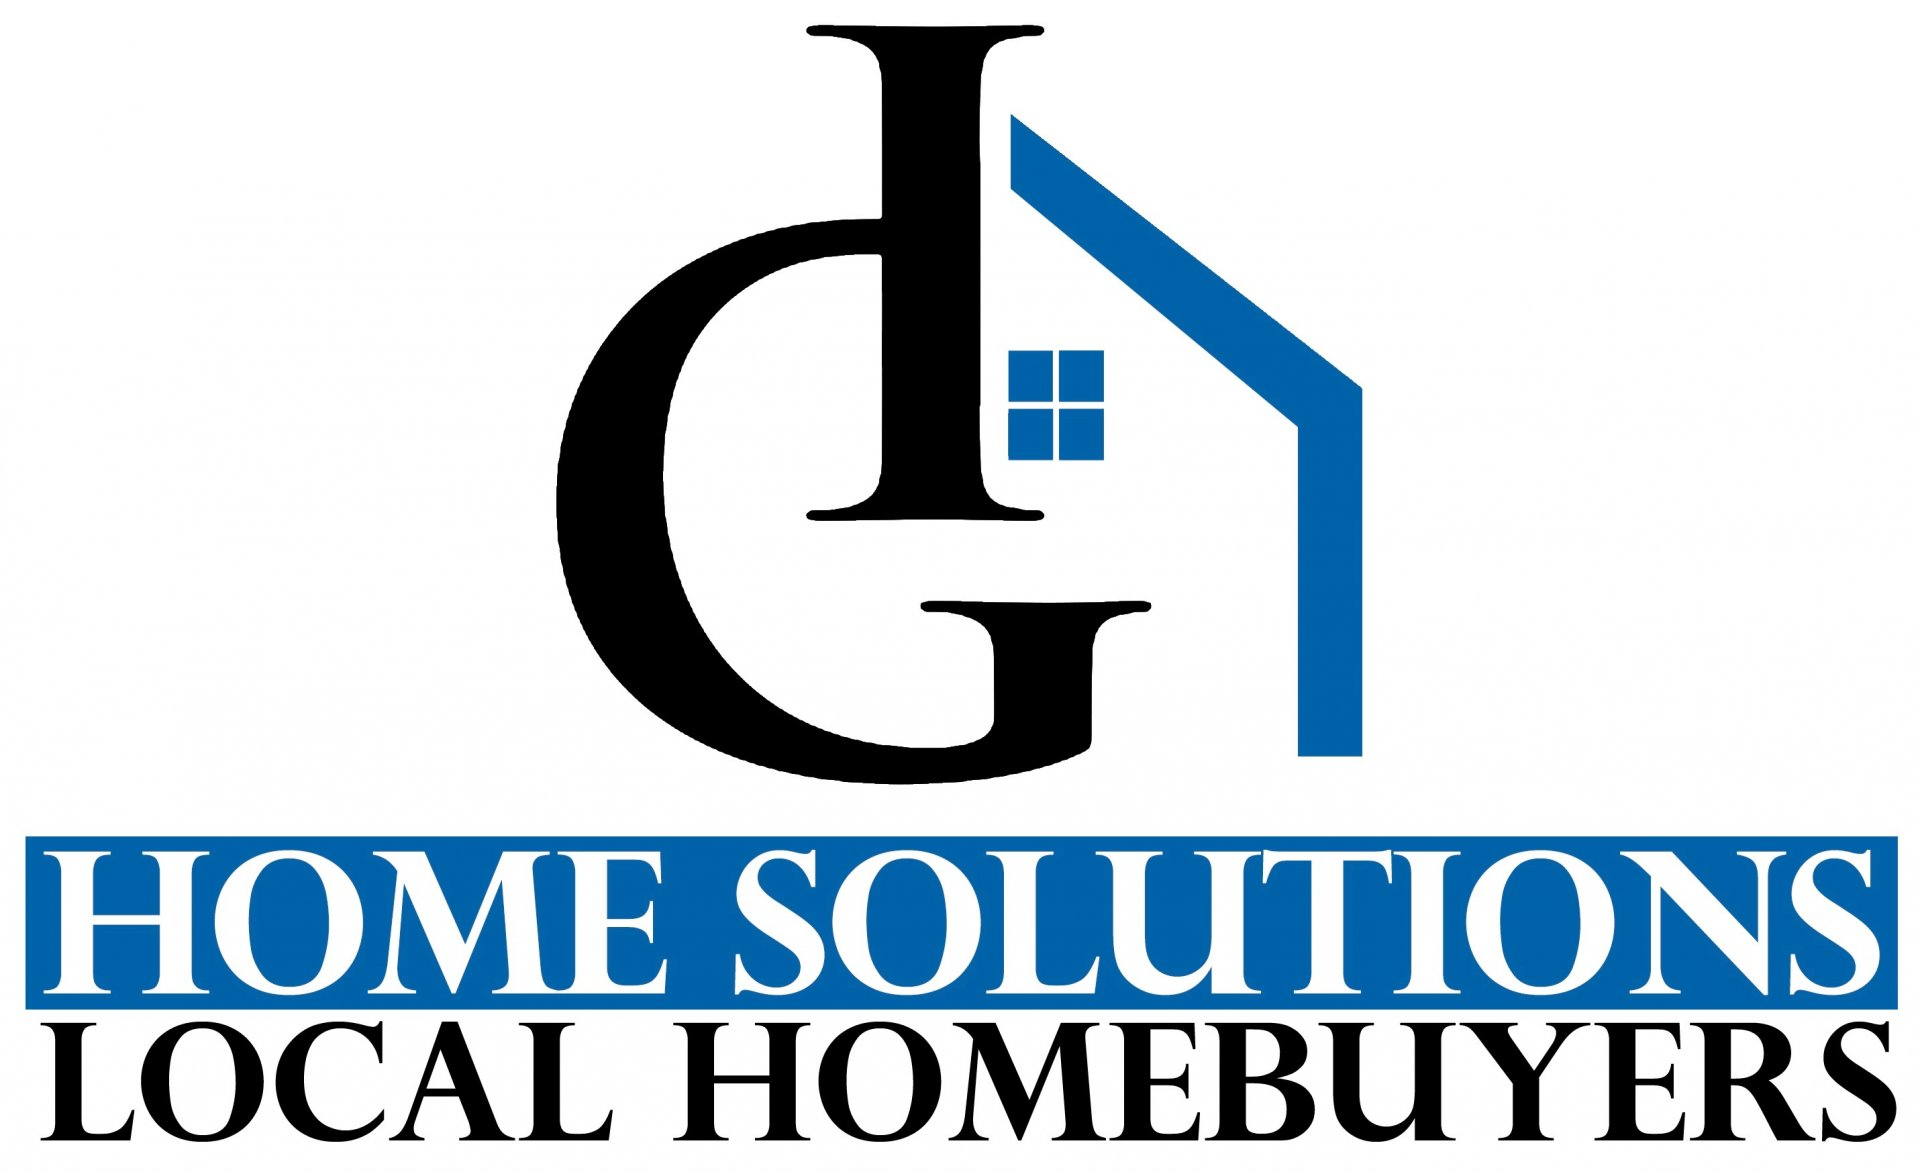 I.G. Home Solutions logo